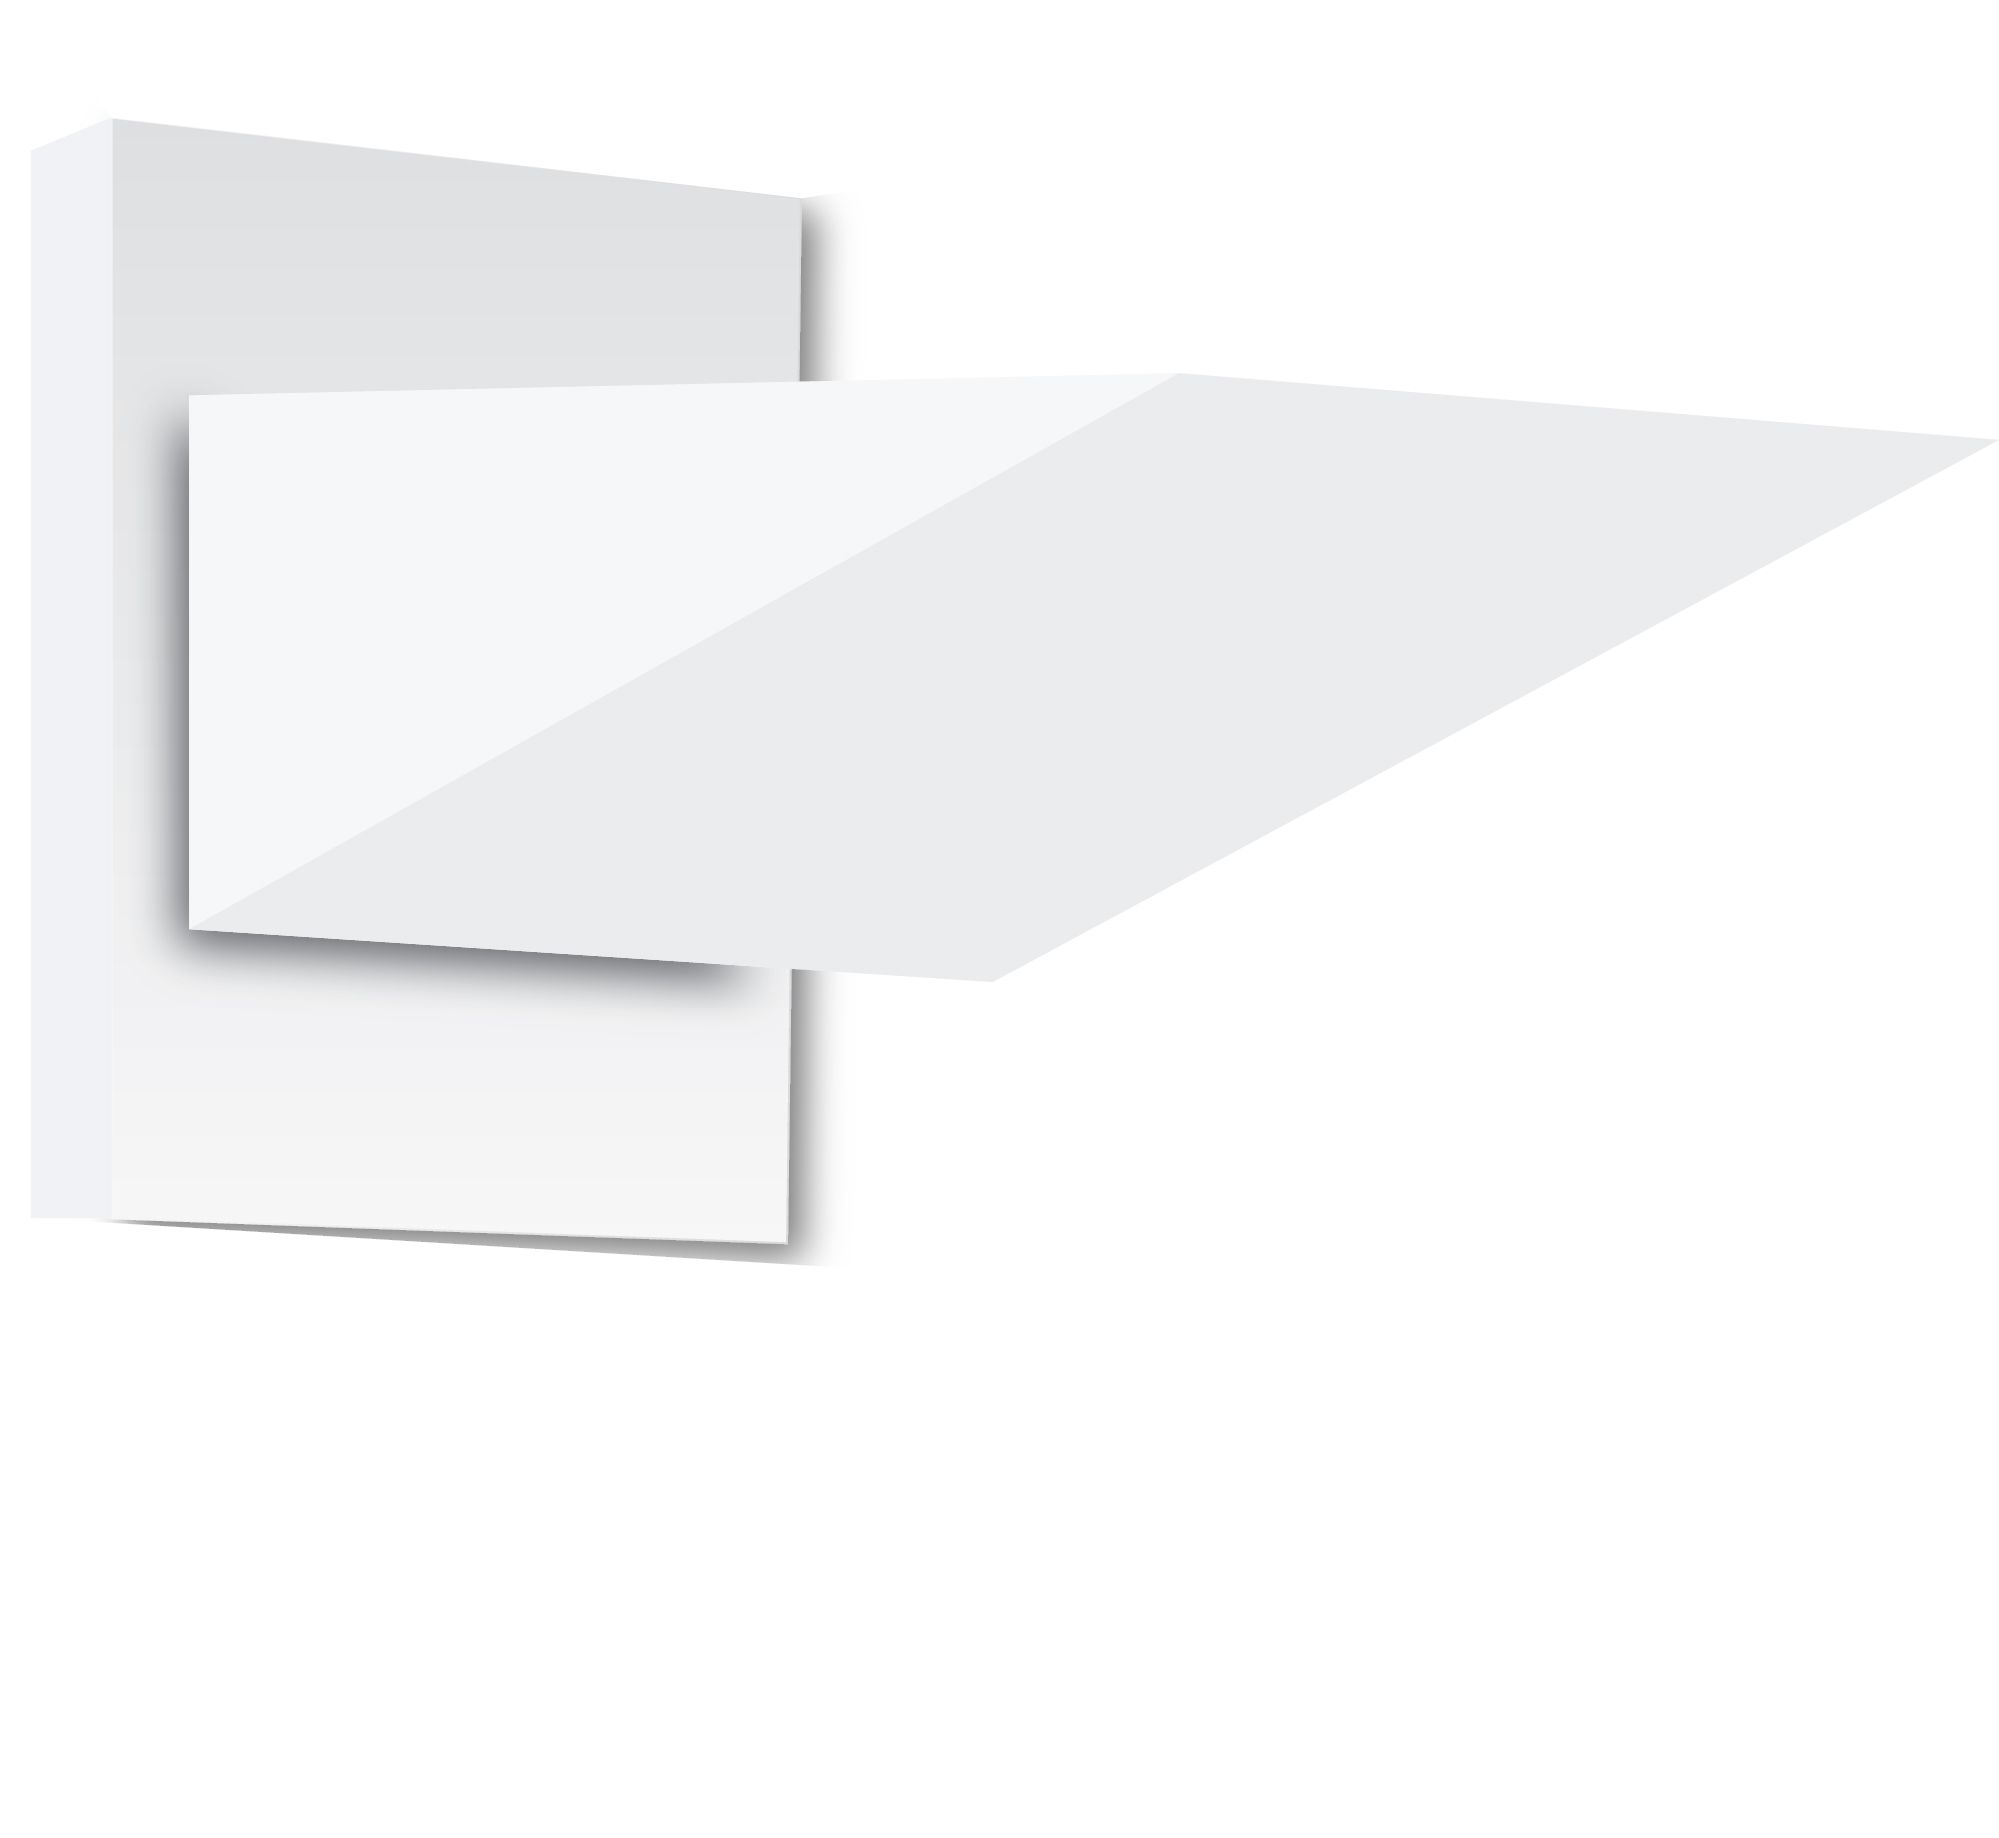 Belfer lighting 7215 the wedge light wall mount sconce belfer lighting 7215 the wedge light wall mount sconce 1 lamp fixture with square backplate mozeypictures Images